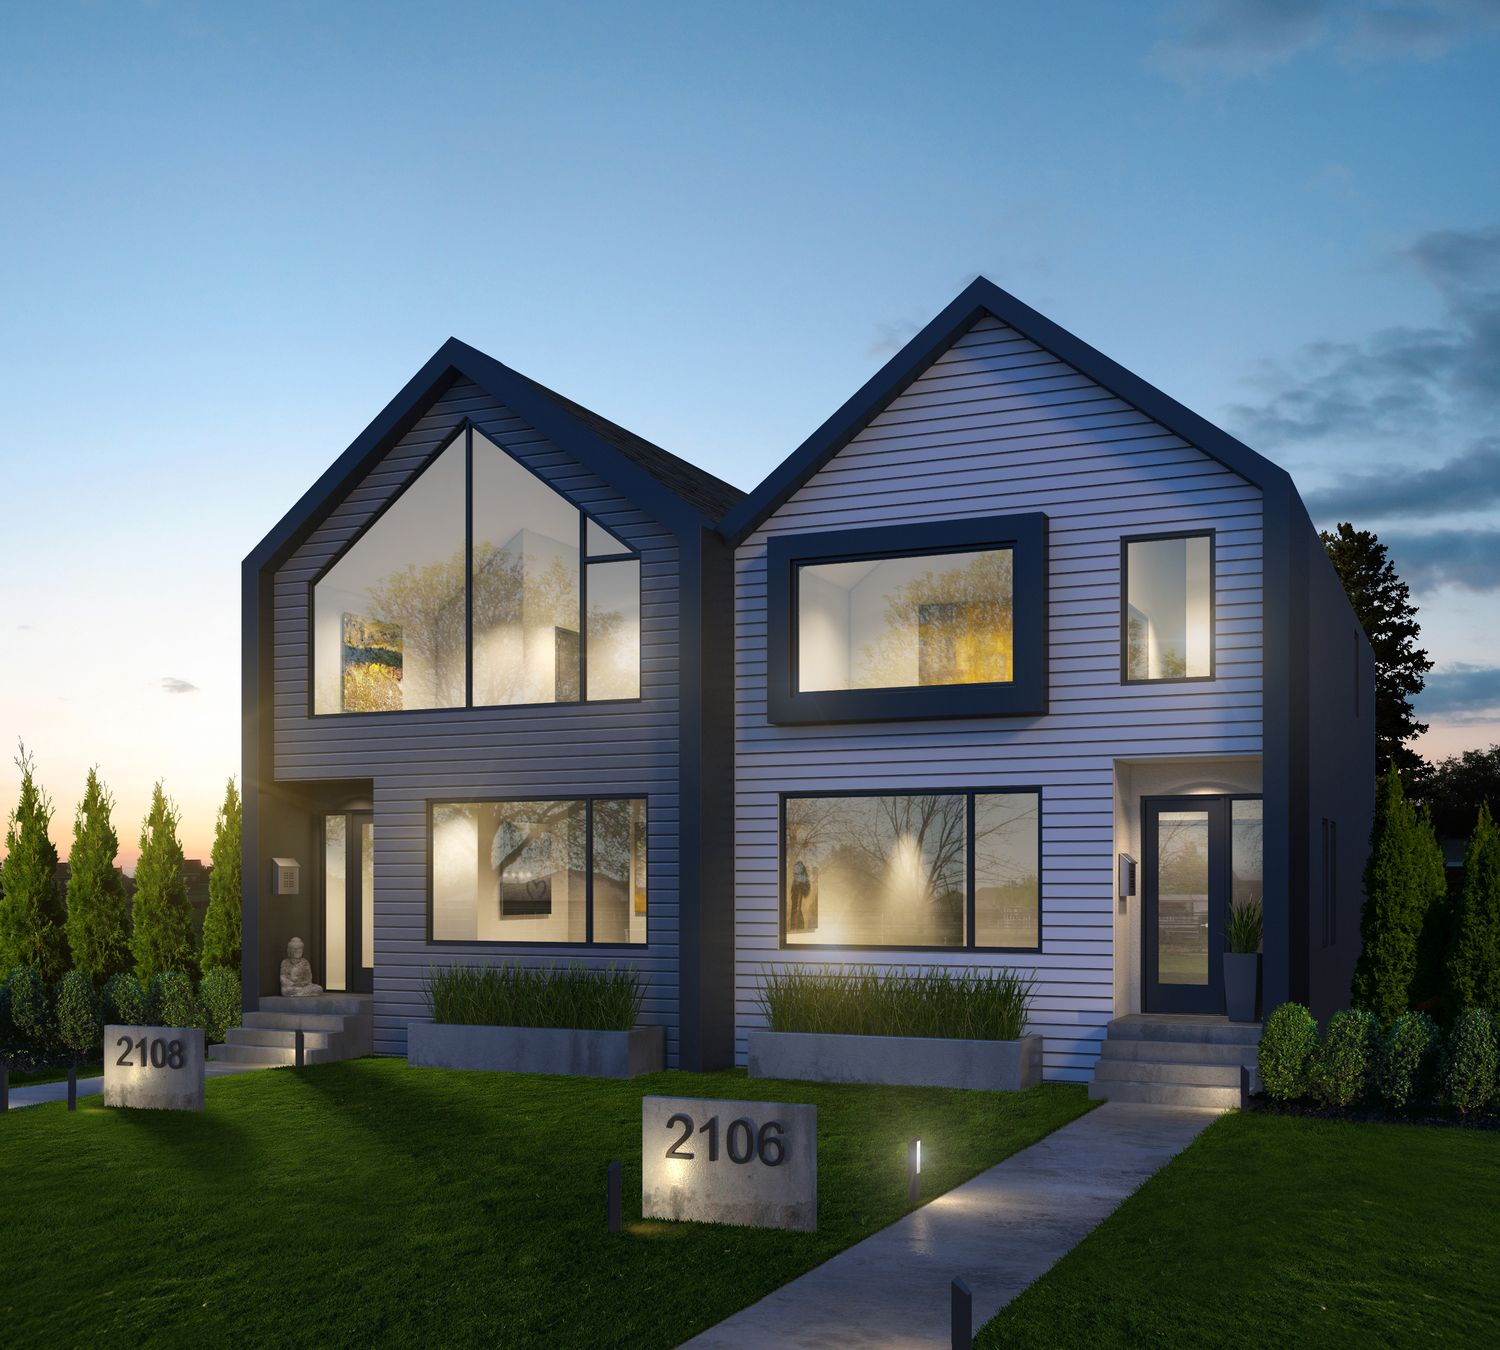 Semi Detached Houses Design: Pin By Dcmetromodern On Contemporary Duplexes And